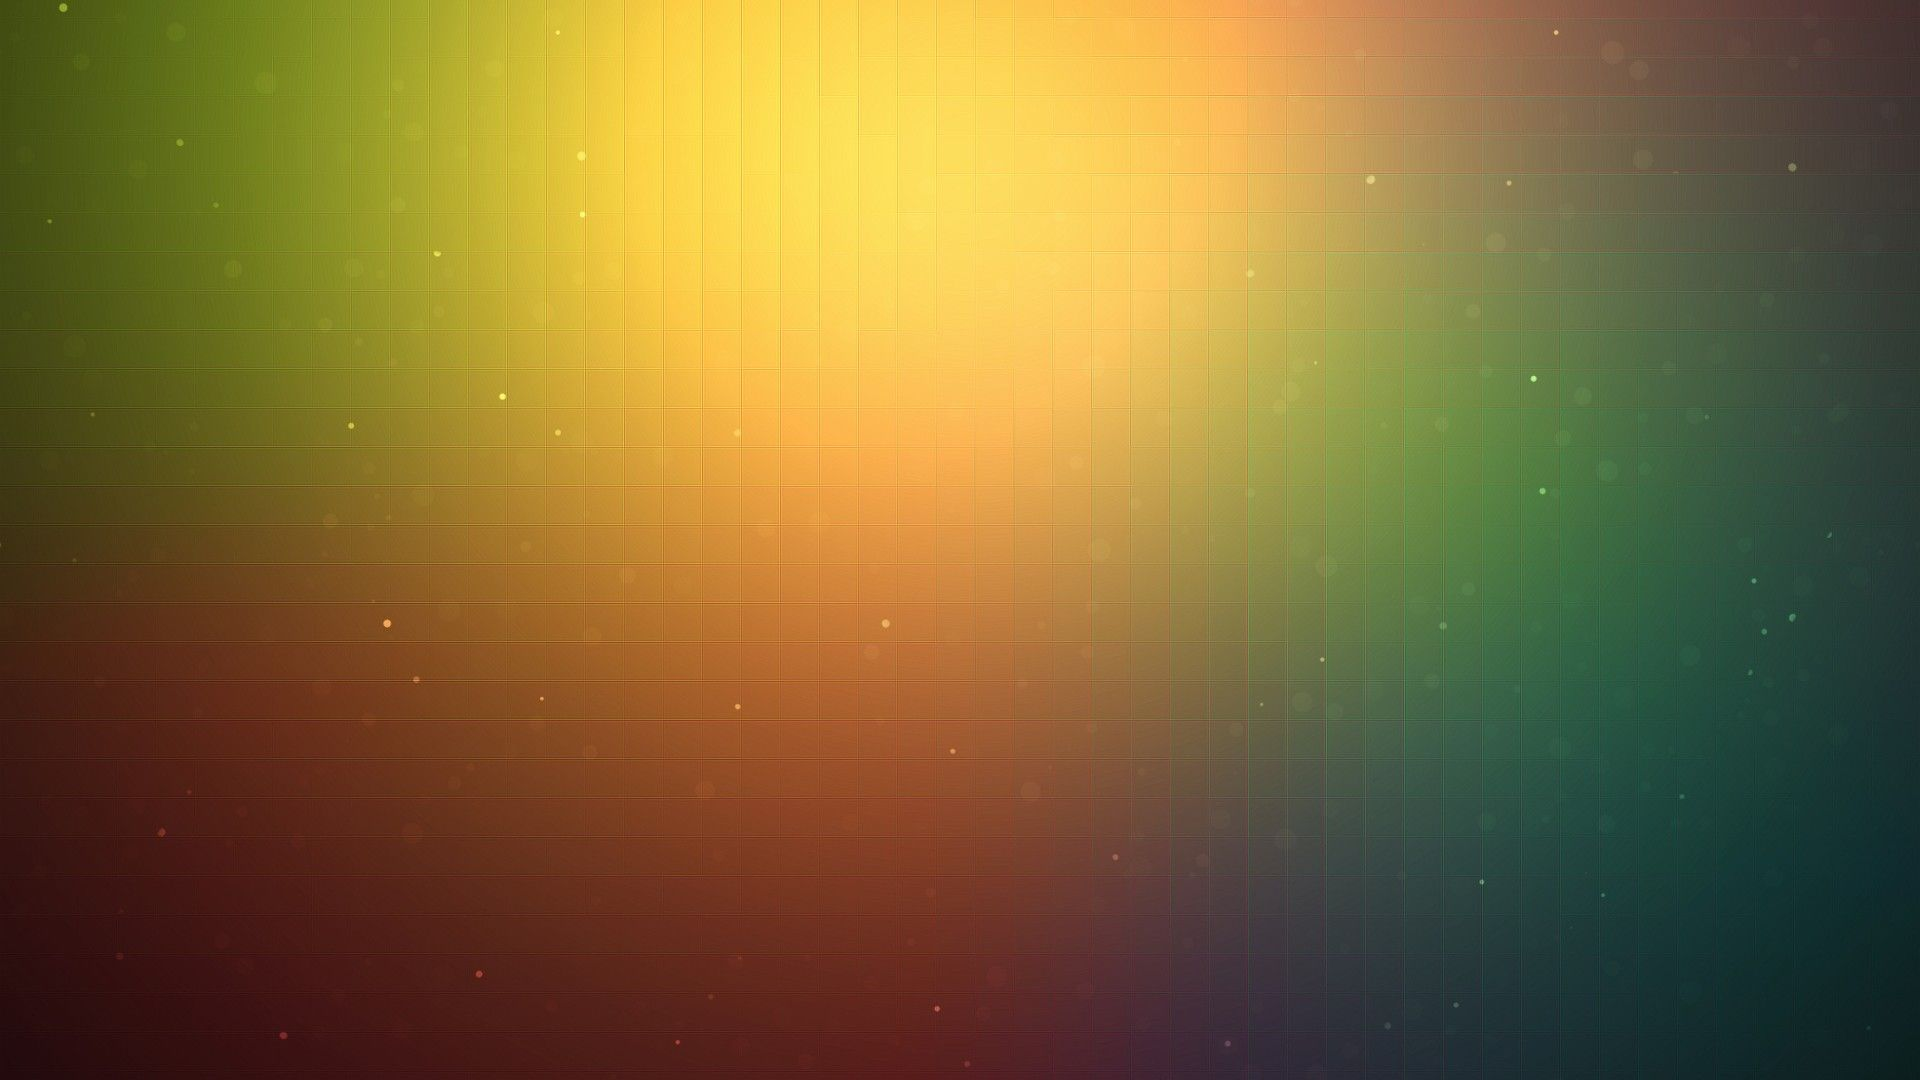 Download Multicolor Gaussian Blur Simple Background Plain 88267 15 Hd Desktop Wallpapers Wallpapers87